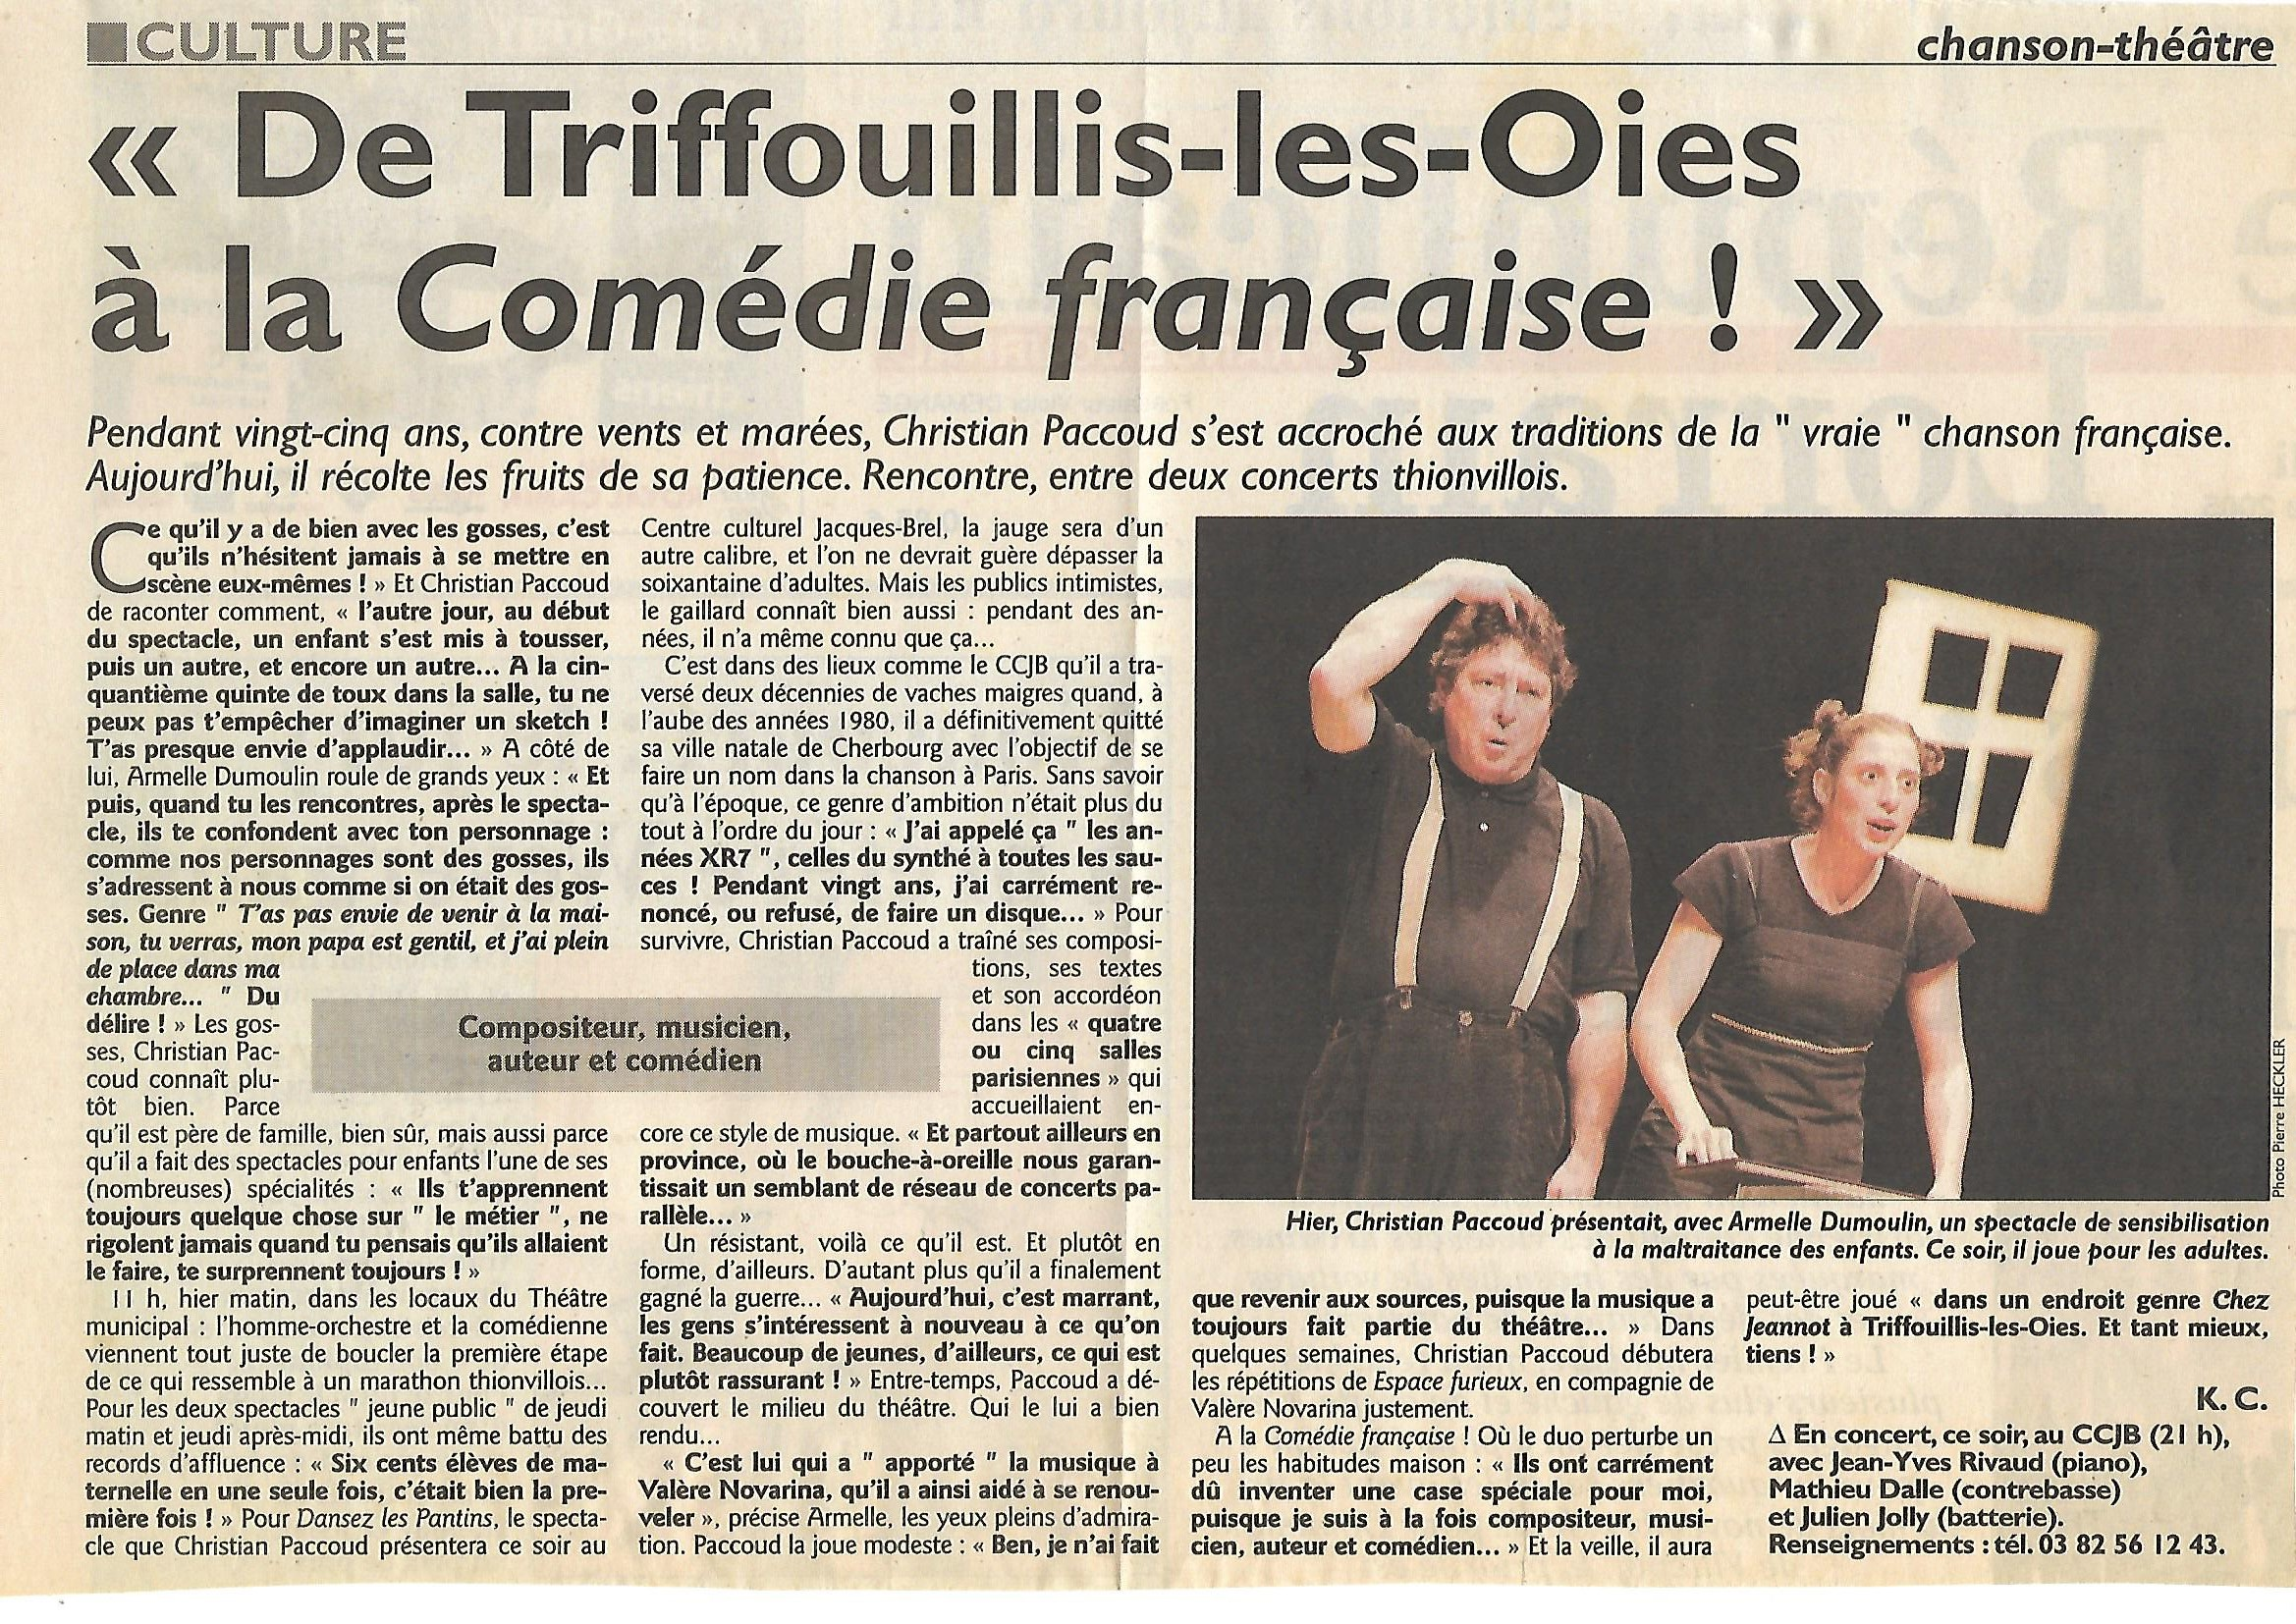 ARTICLE THIONVILLE